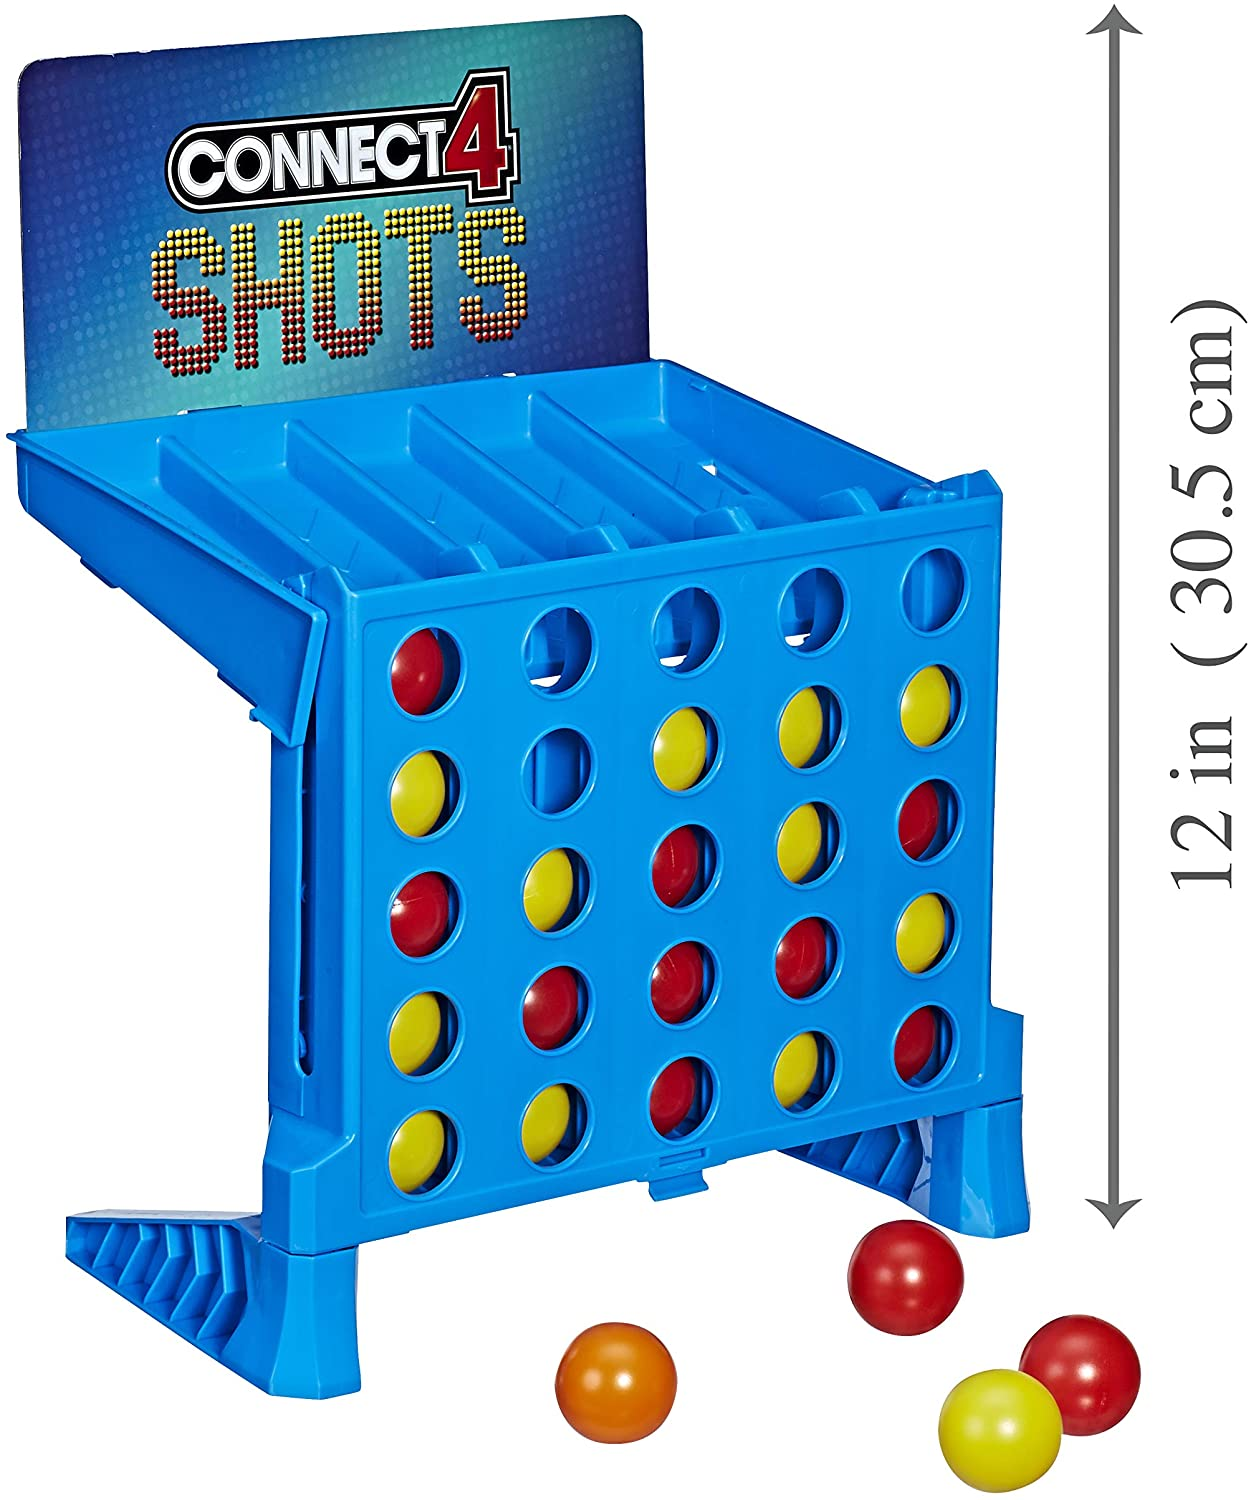 Hasbro Connect 4 Shots Activity Game, Game for kids Ages 8 and up